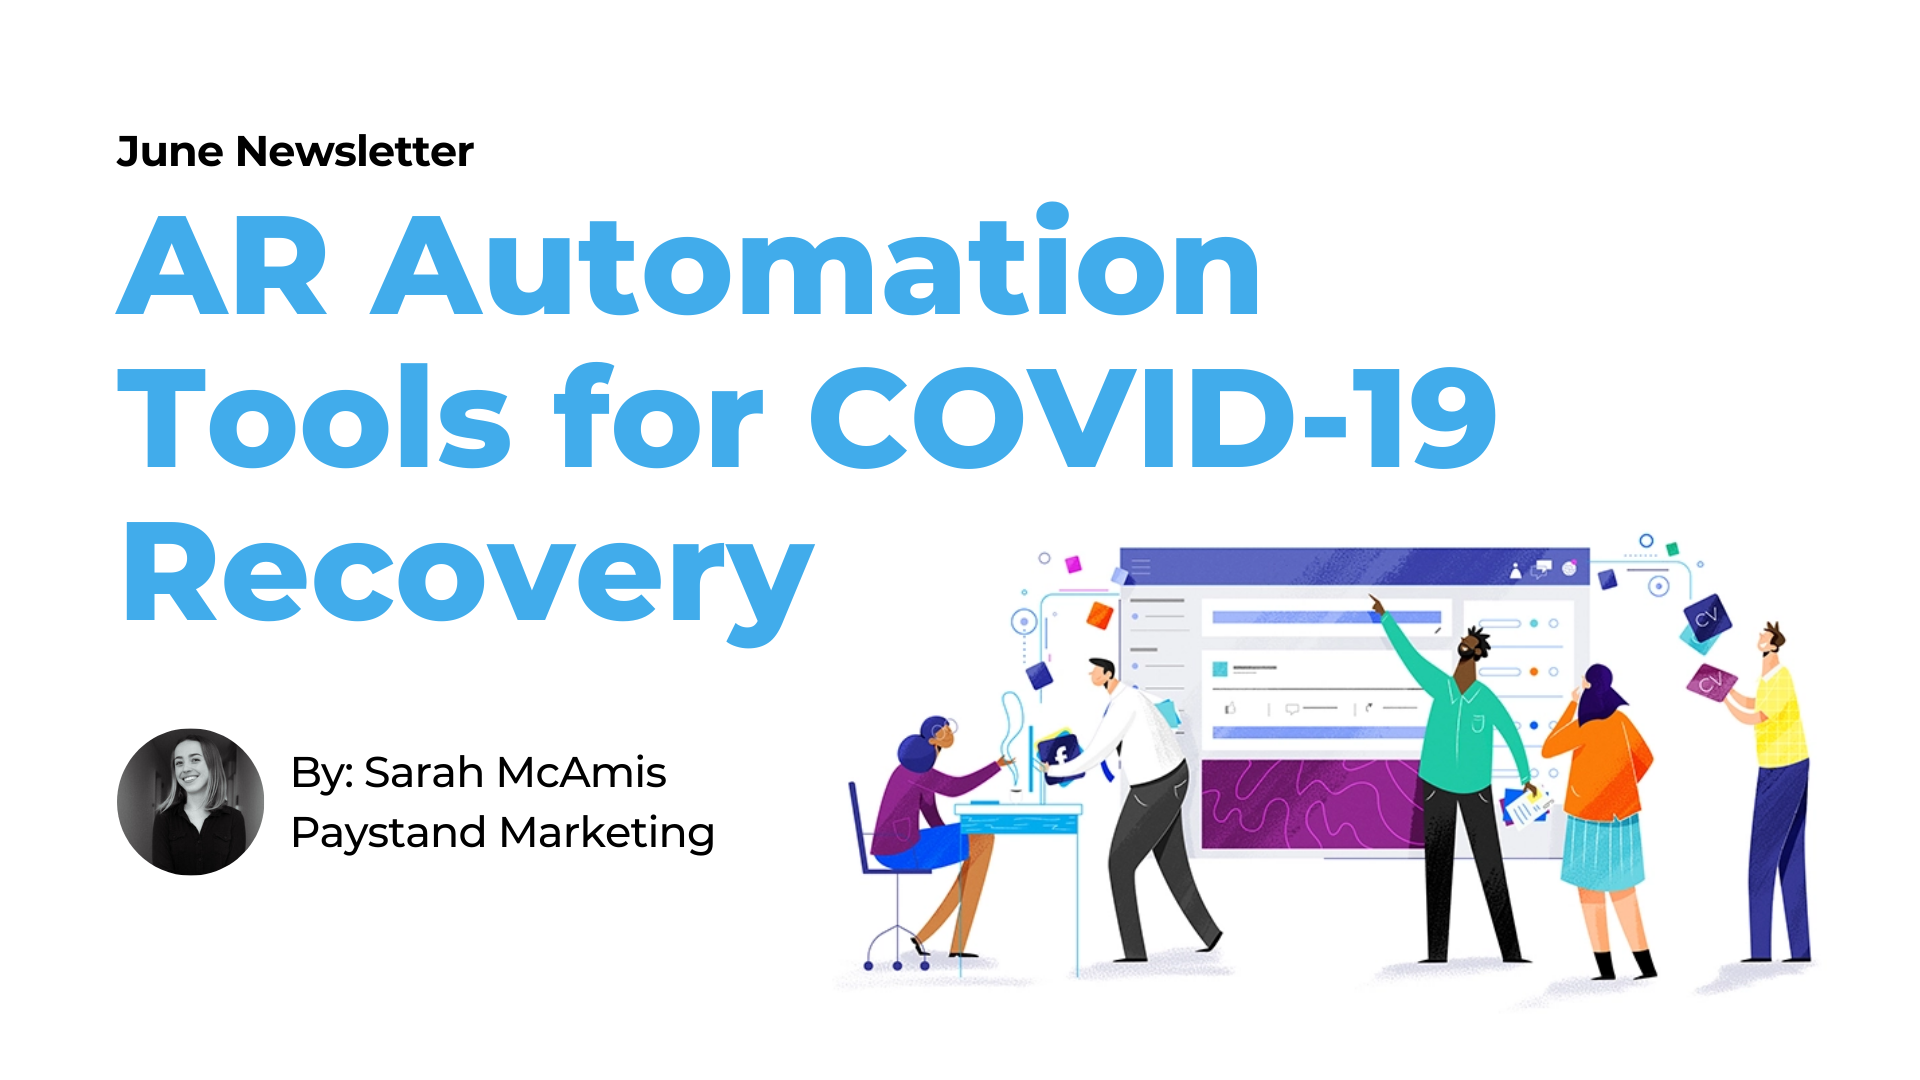 June 2020 Newsletter. AR Automation Tools for COVID-19 Recovery